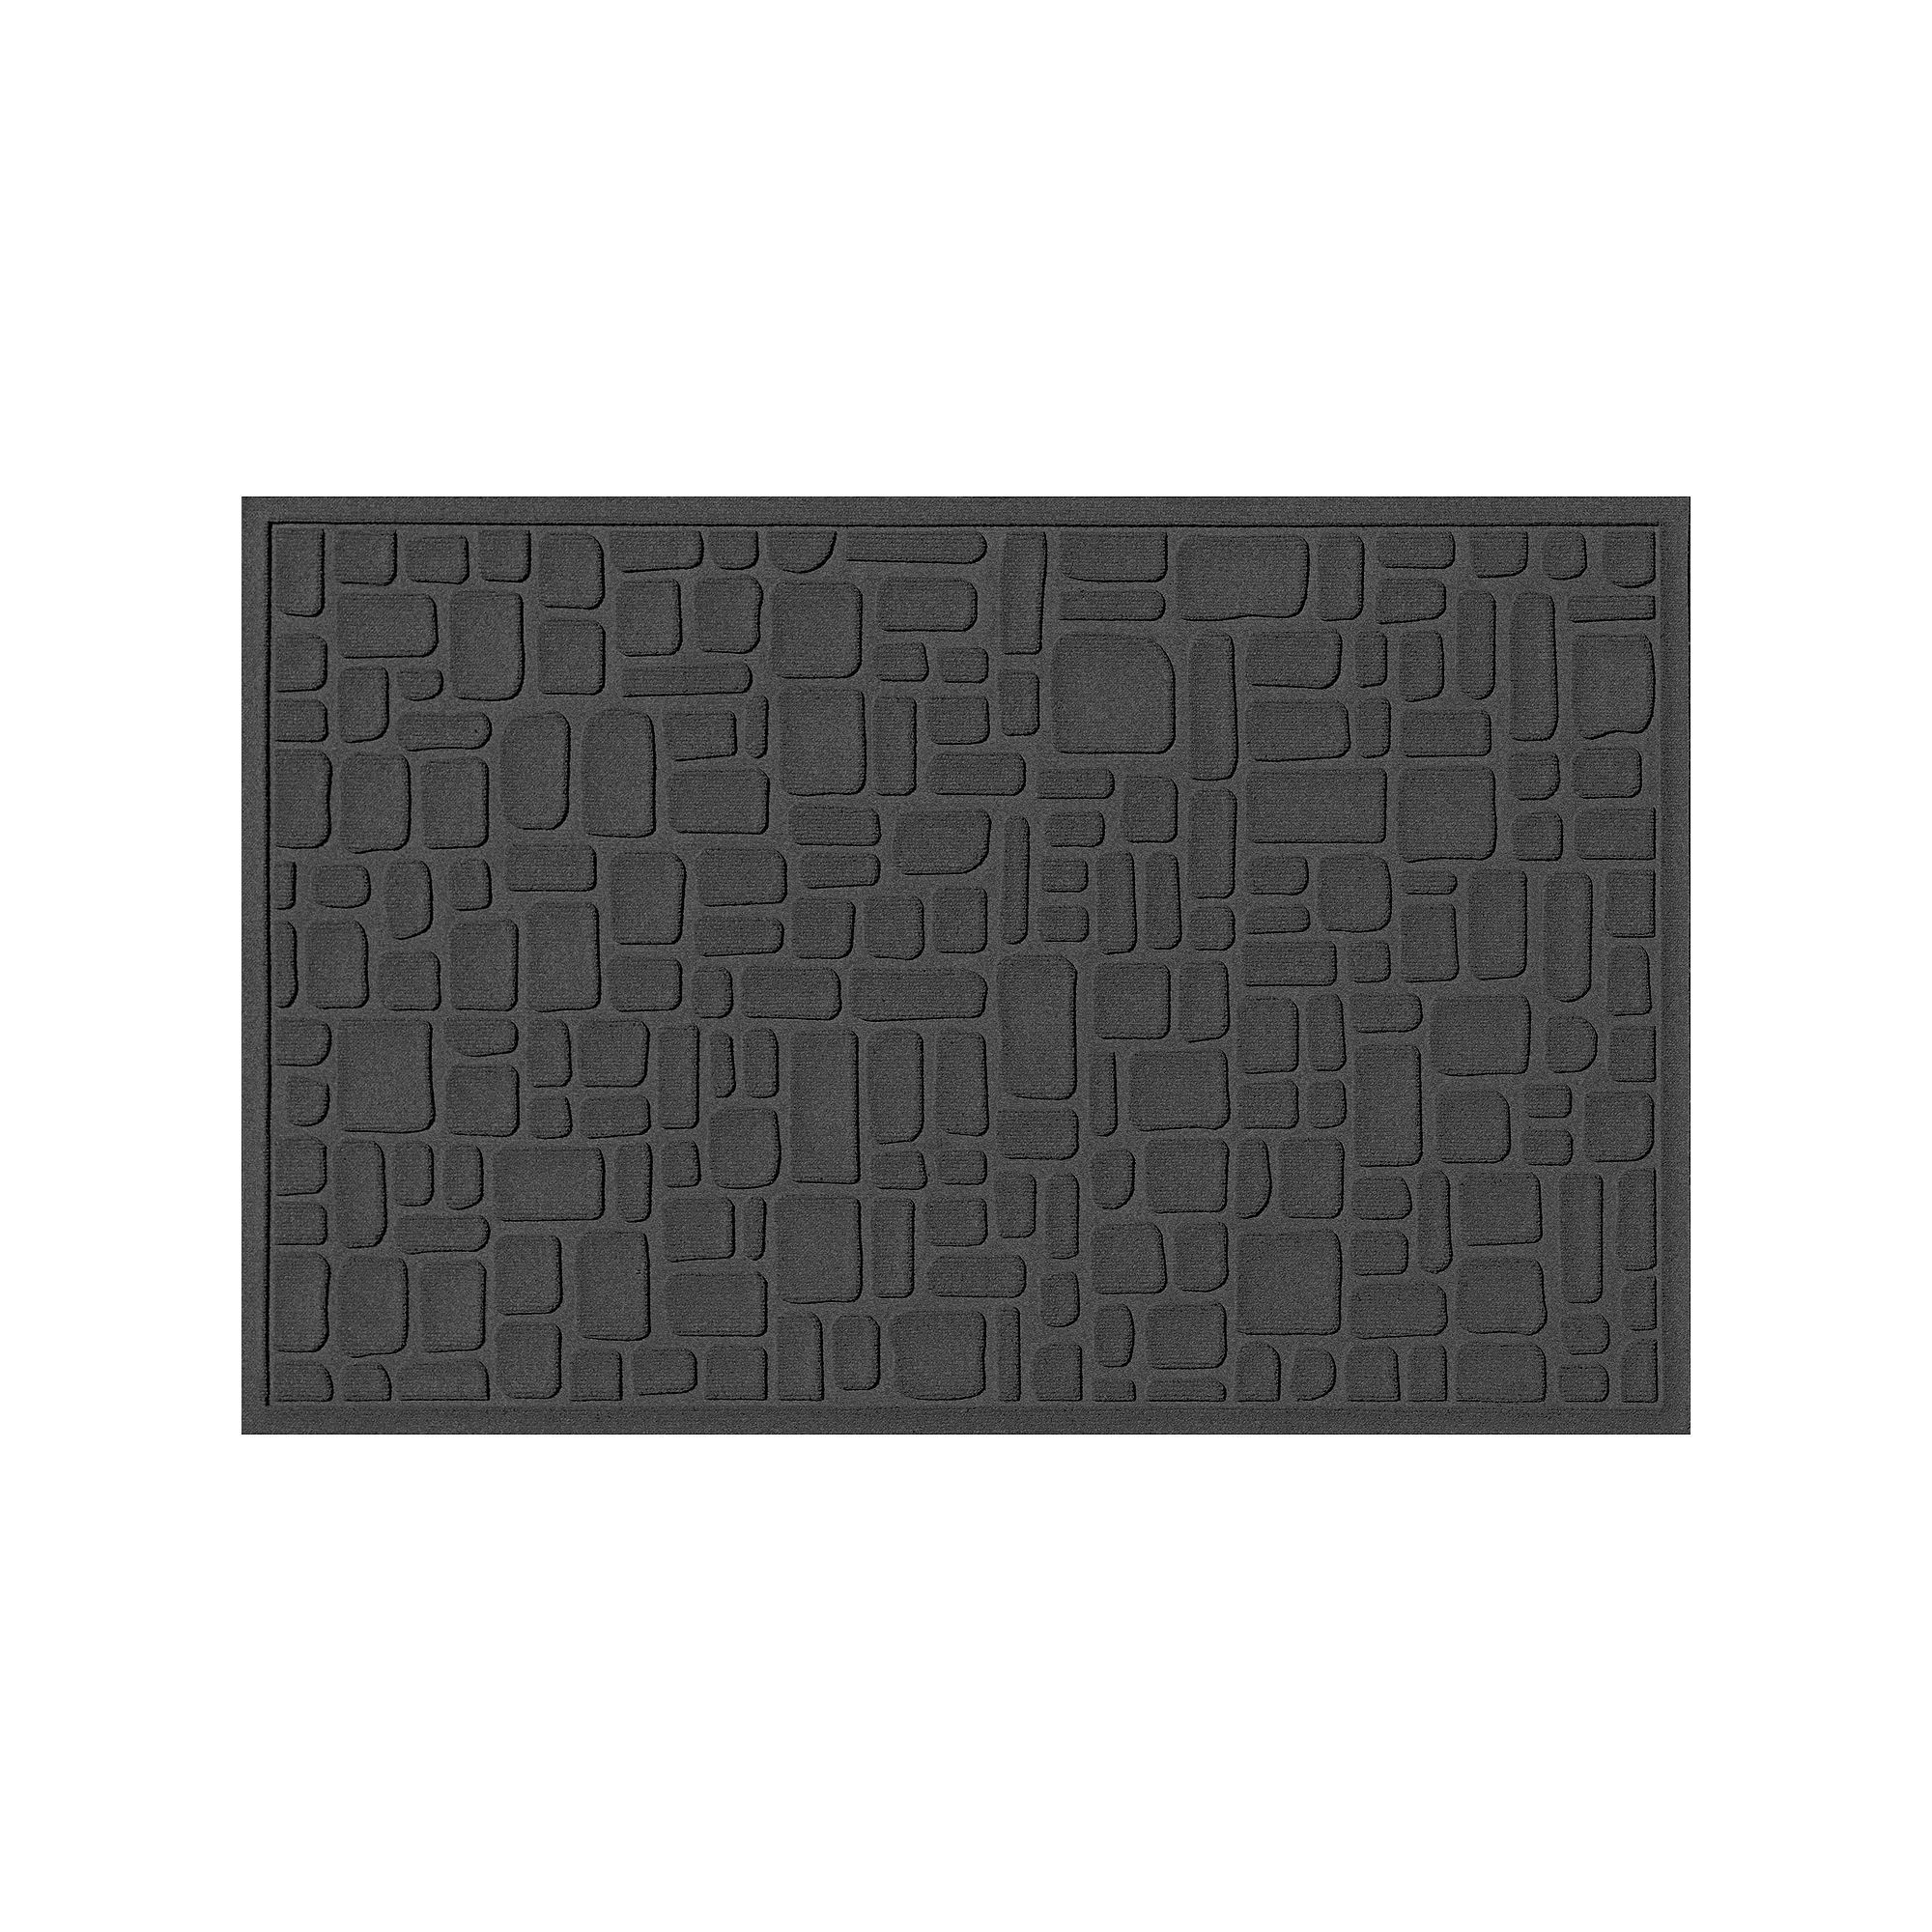 com tour joe floor ecoguard water formydesk product products genuine indoor wiper guard mats